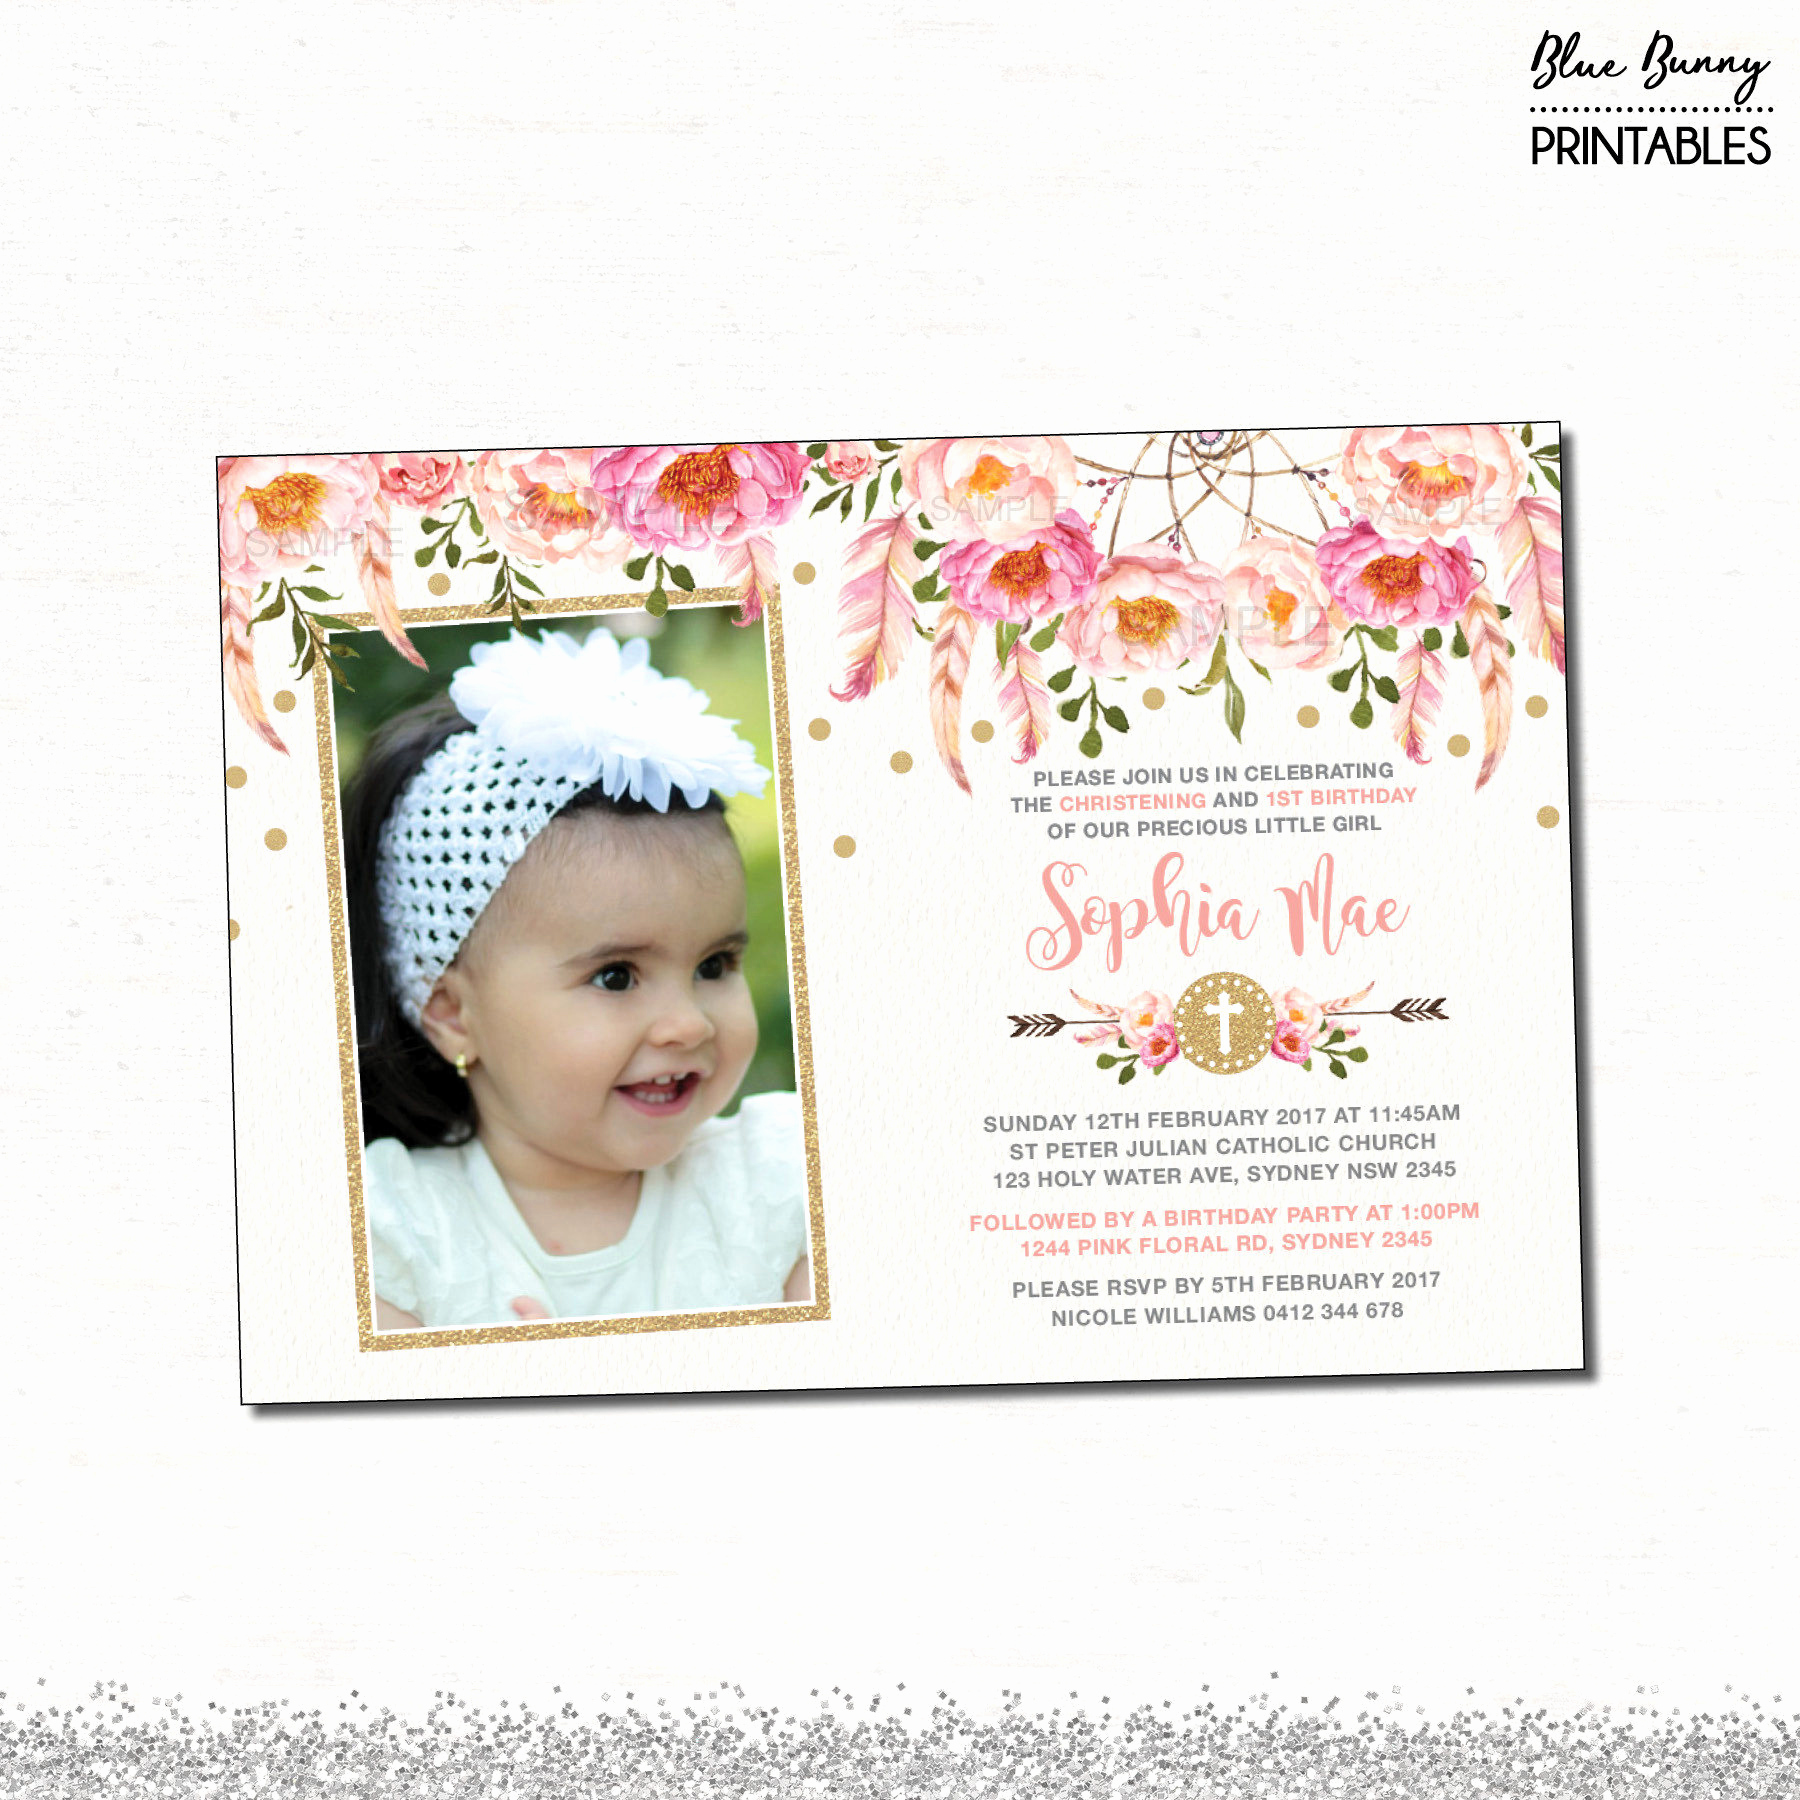 Christening and Birthday Invitation Elegant Floral First Birthday & Baptism Invitation Pink and Gold